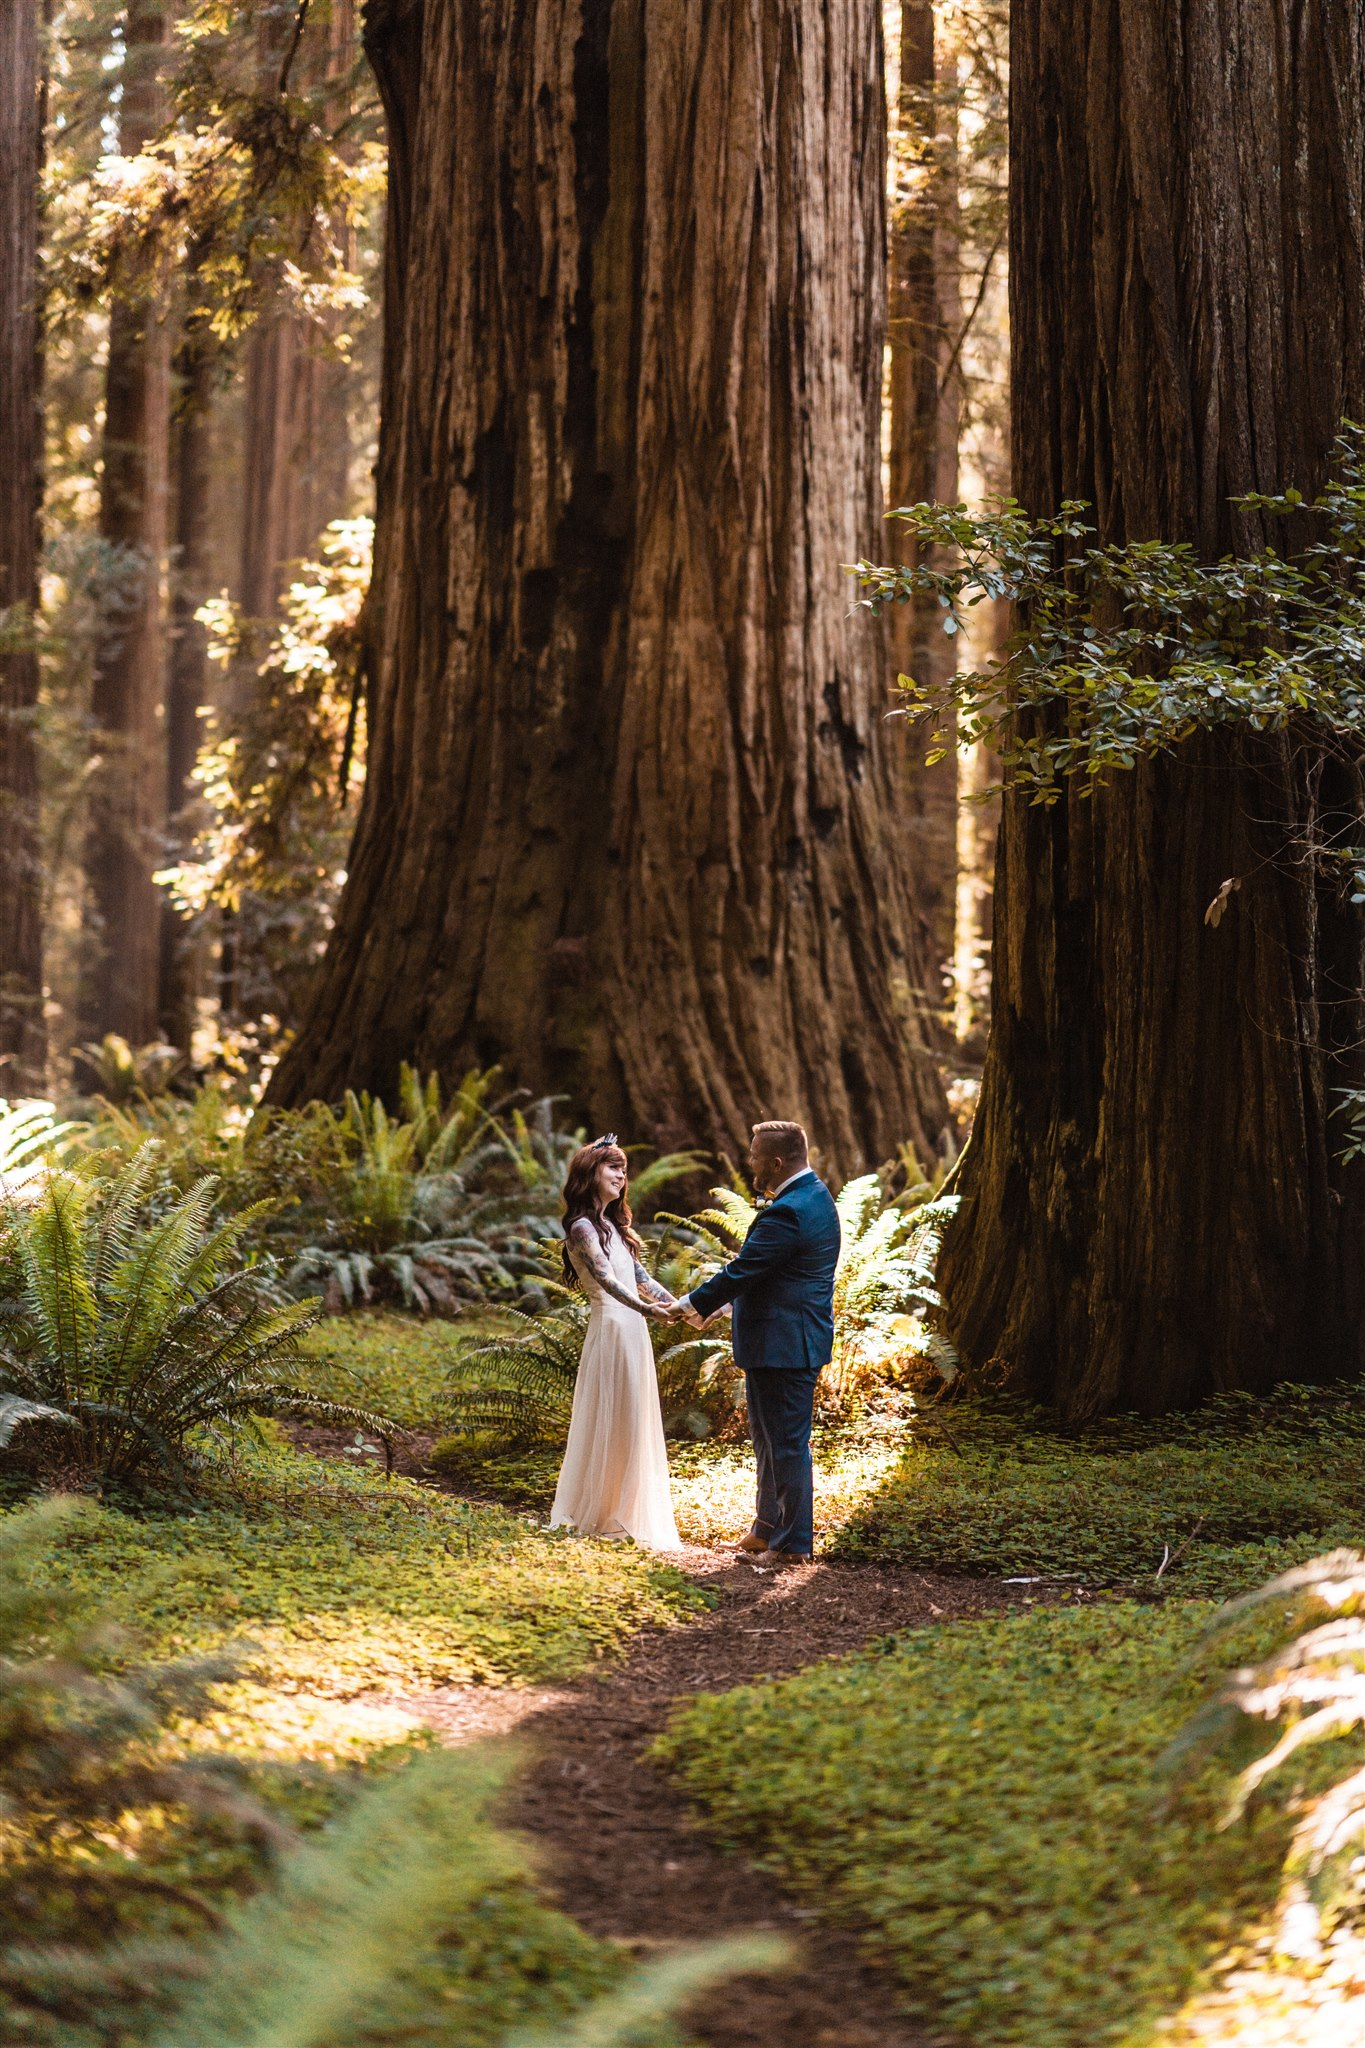 A Redwoods Coastal Elopement. Image: The Foxes Photography